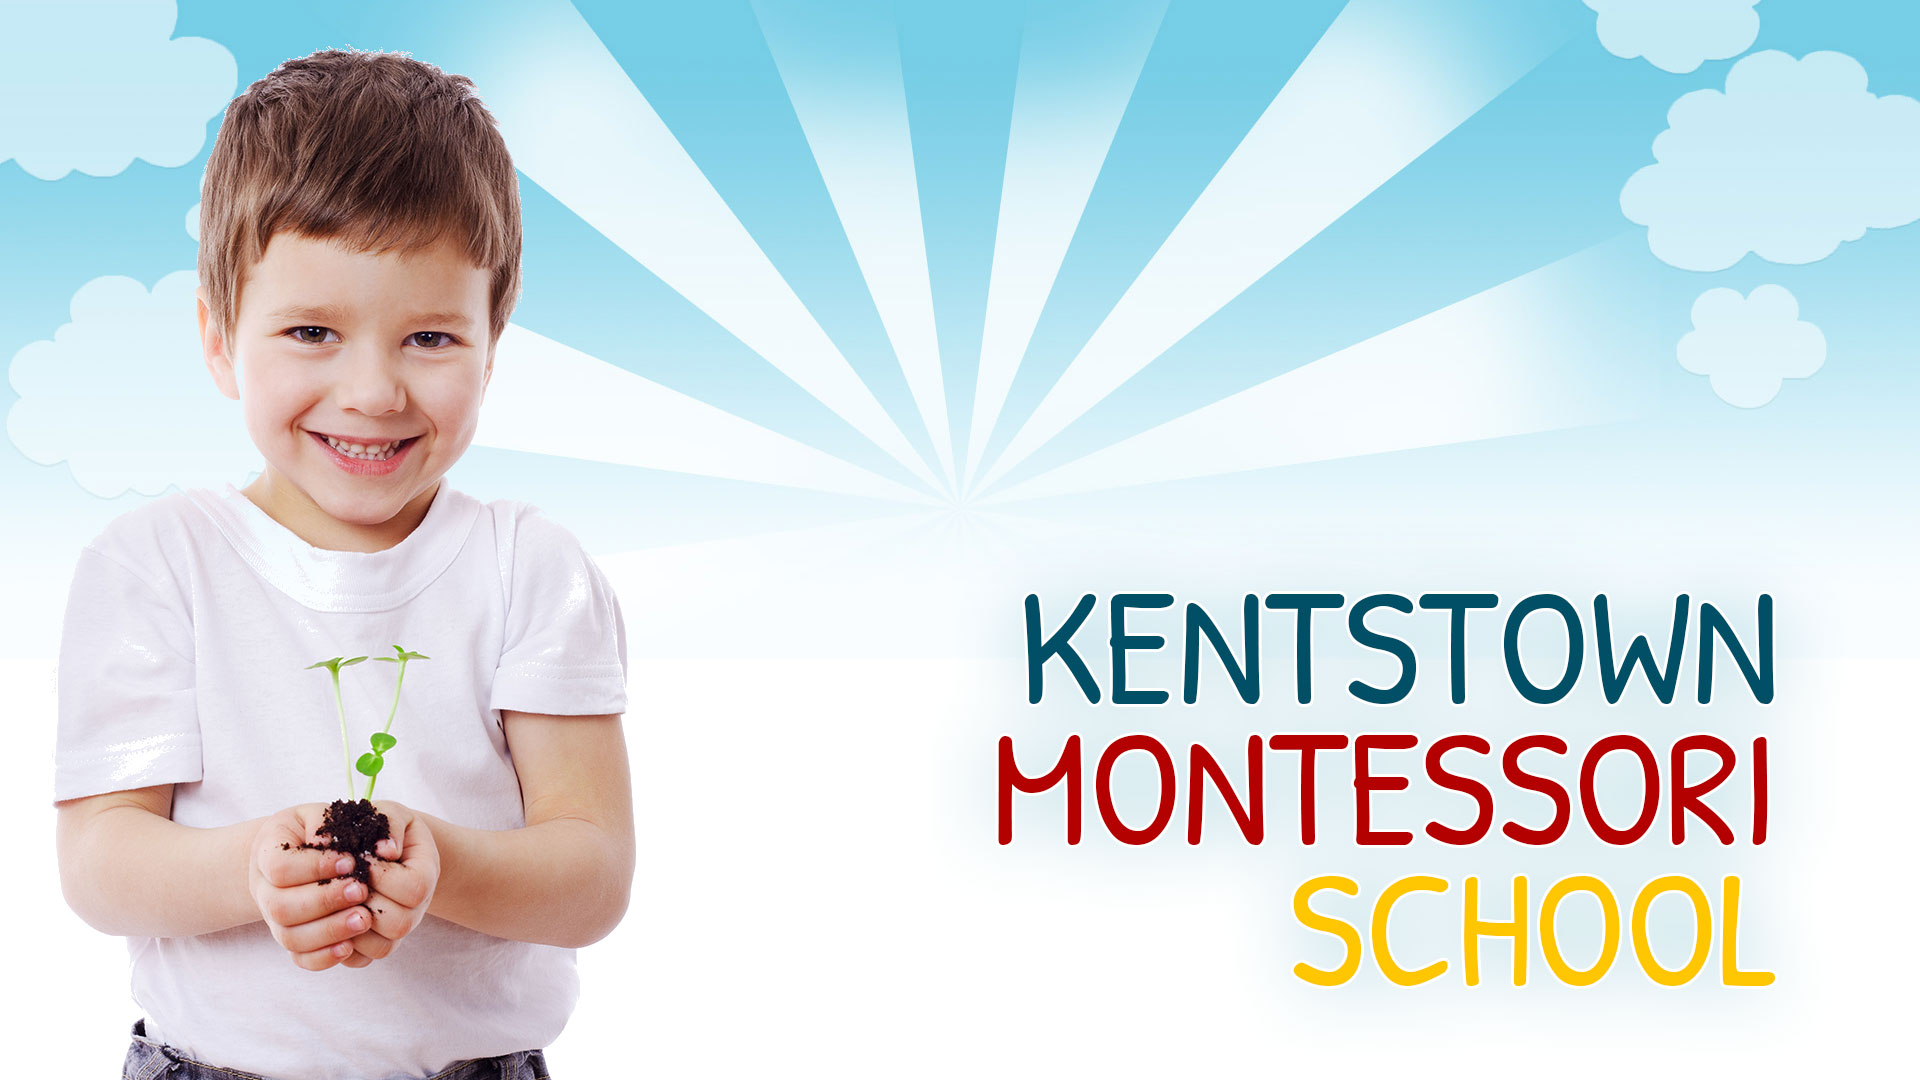 Portfolio: Kentstown Montessori School